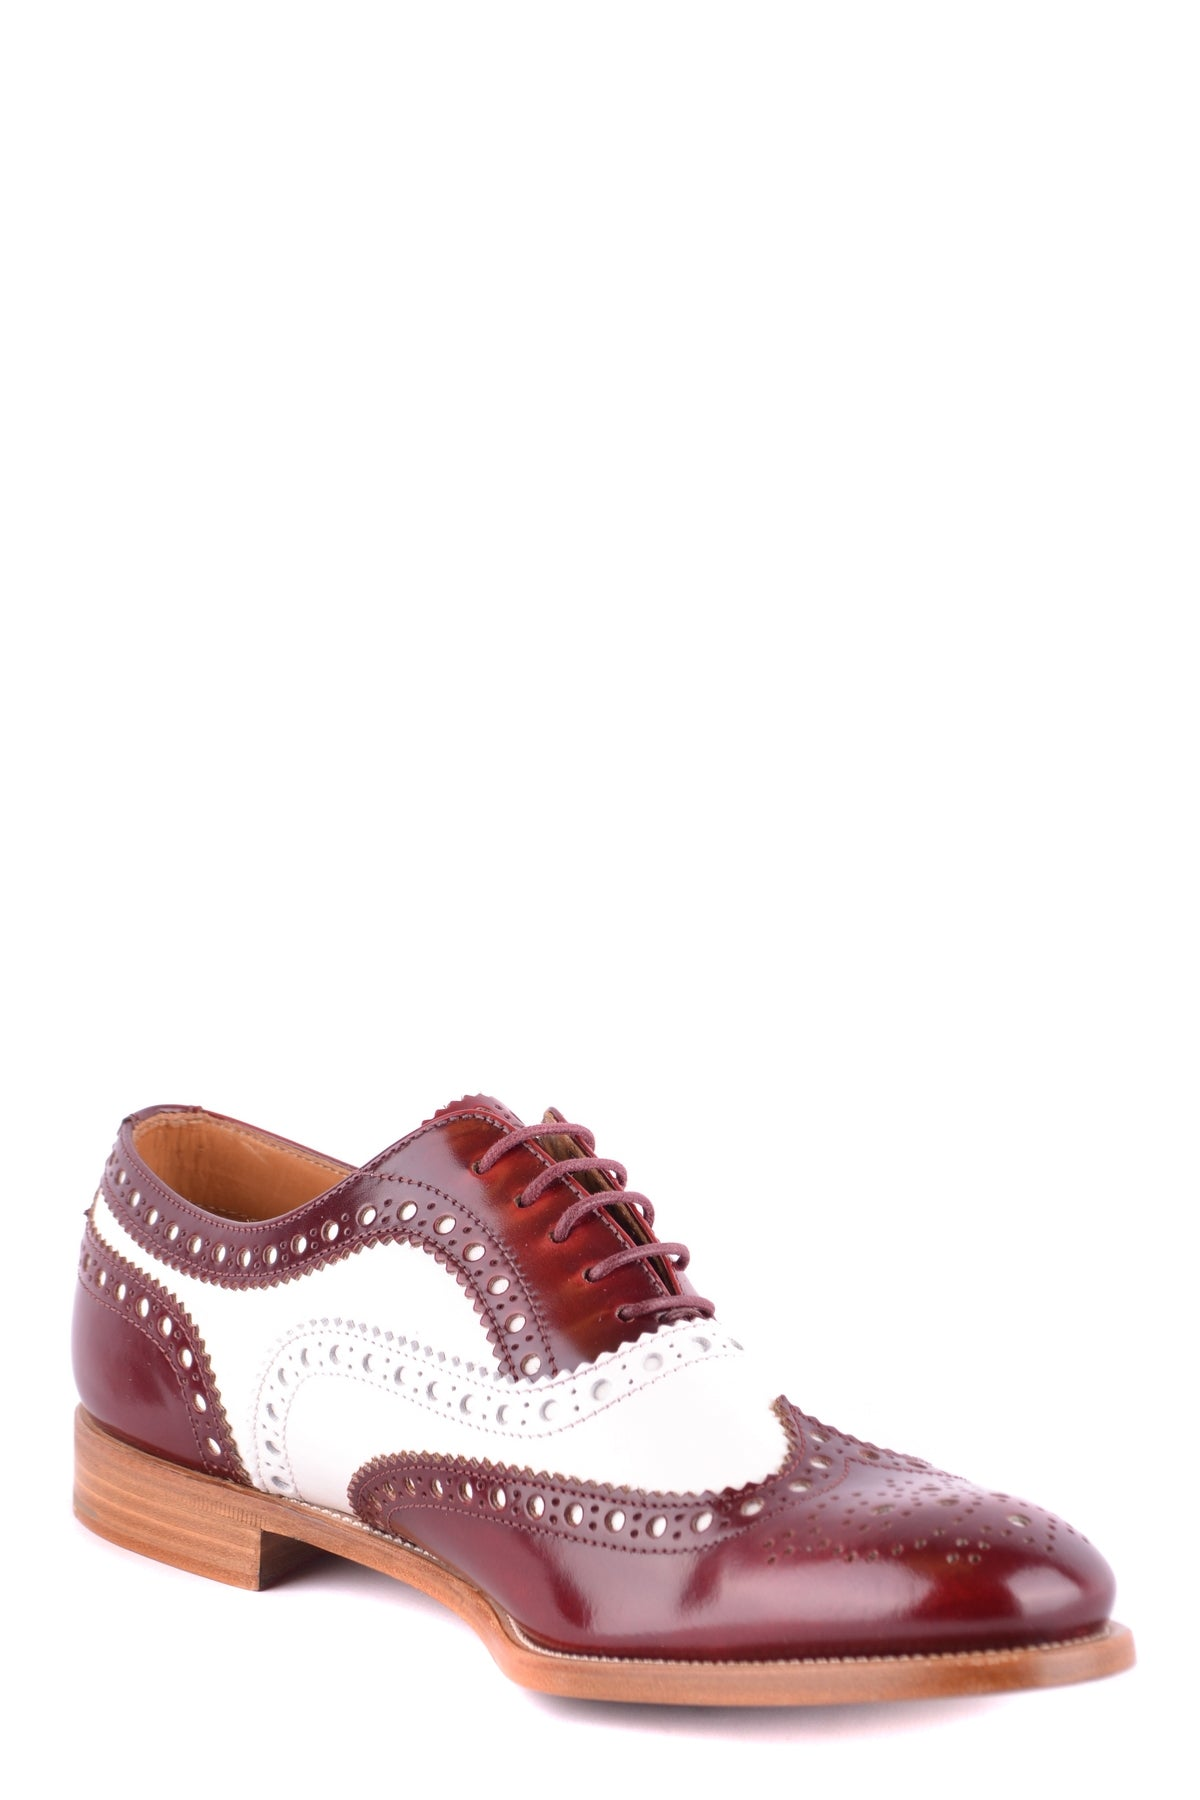 Shoes Tricker'S-Men's Fashion - Men's Shoes - Oxfords-Product Details Terms: New With LabelMain Color: MarrónType Of Accessory: ShoesSeason: Spring / SummerMade In: EnglandGender: ManSize: UkComposition: Leather 50%, Tissue 50%Year: 2017-Keyomi-Sook